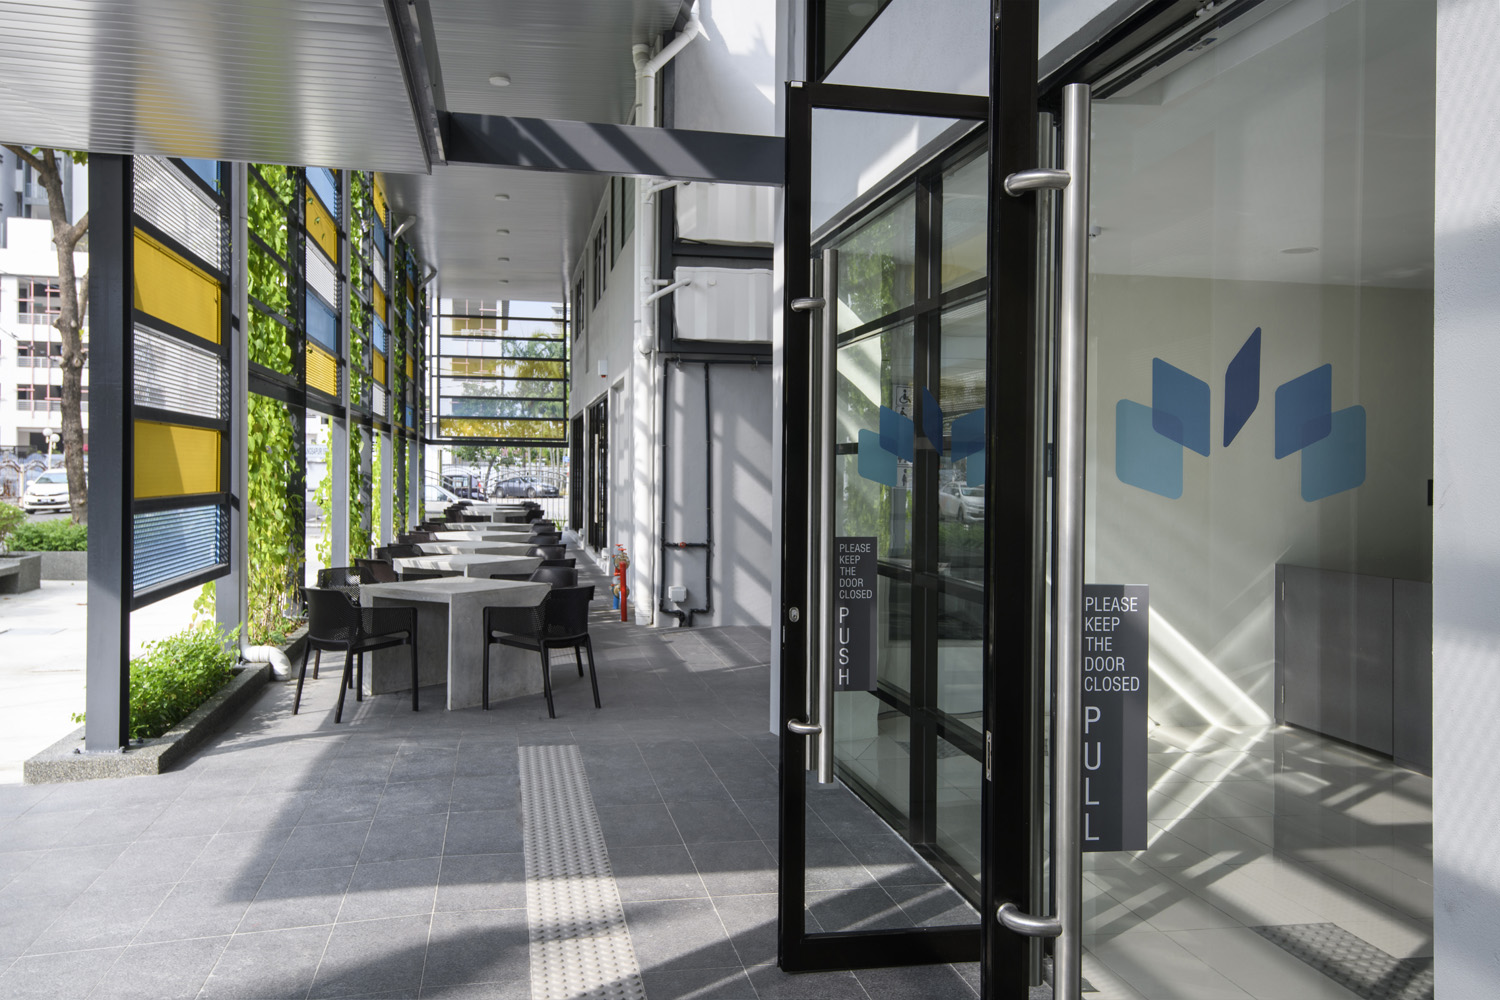 The space comprises multiple rooms for meetings and seminars as well as quiet spaces for reading and research